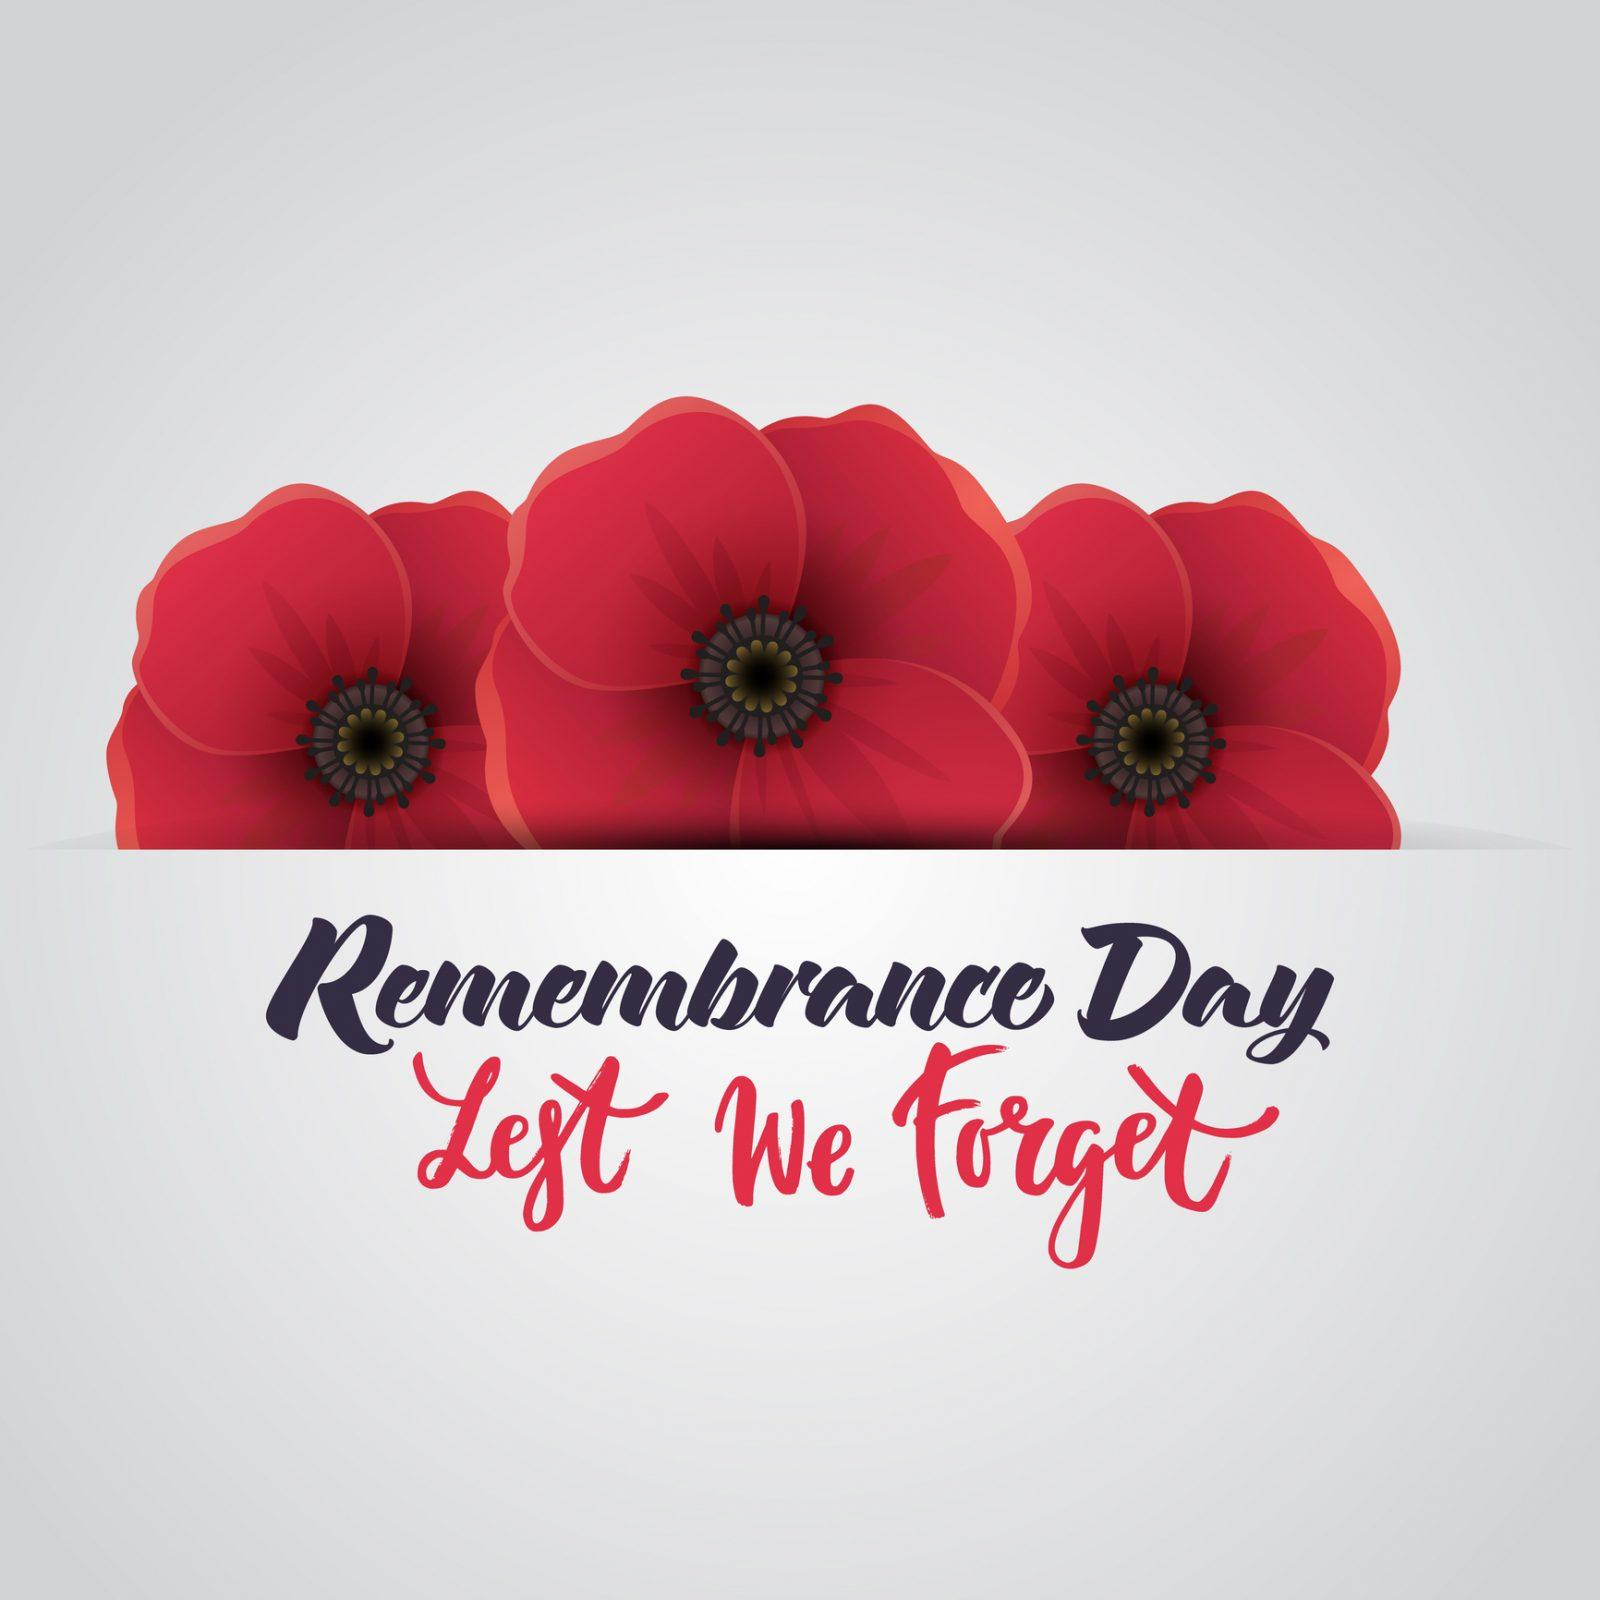 remembrance_day_image.jpg